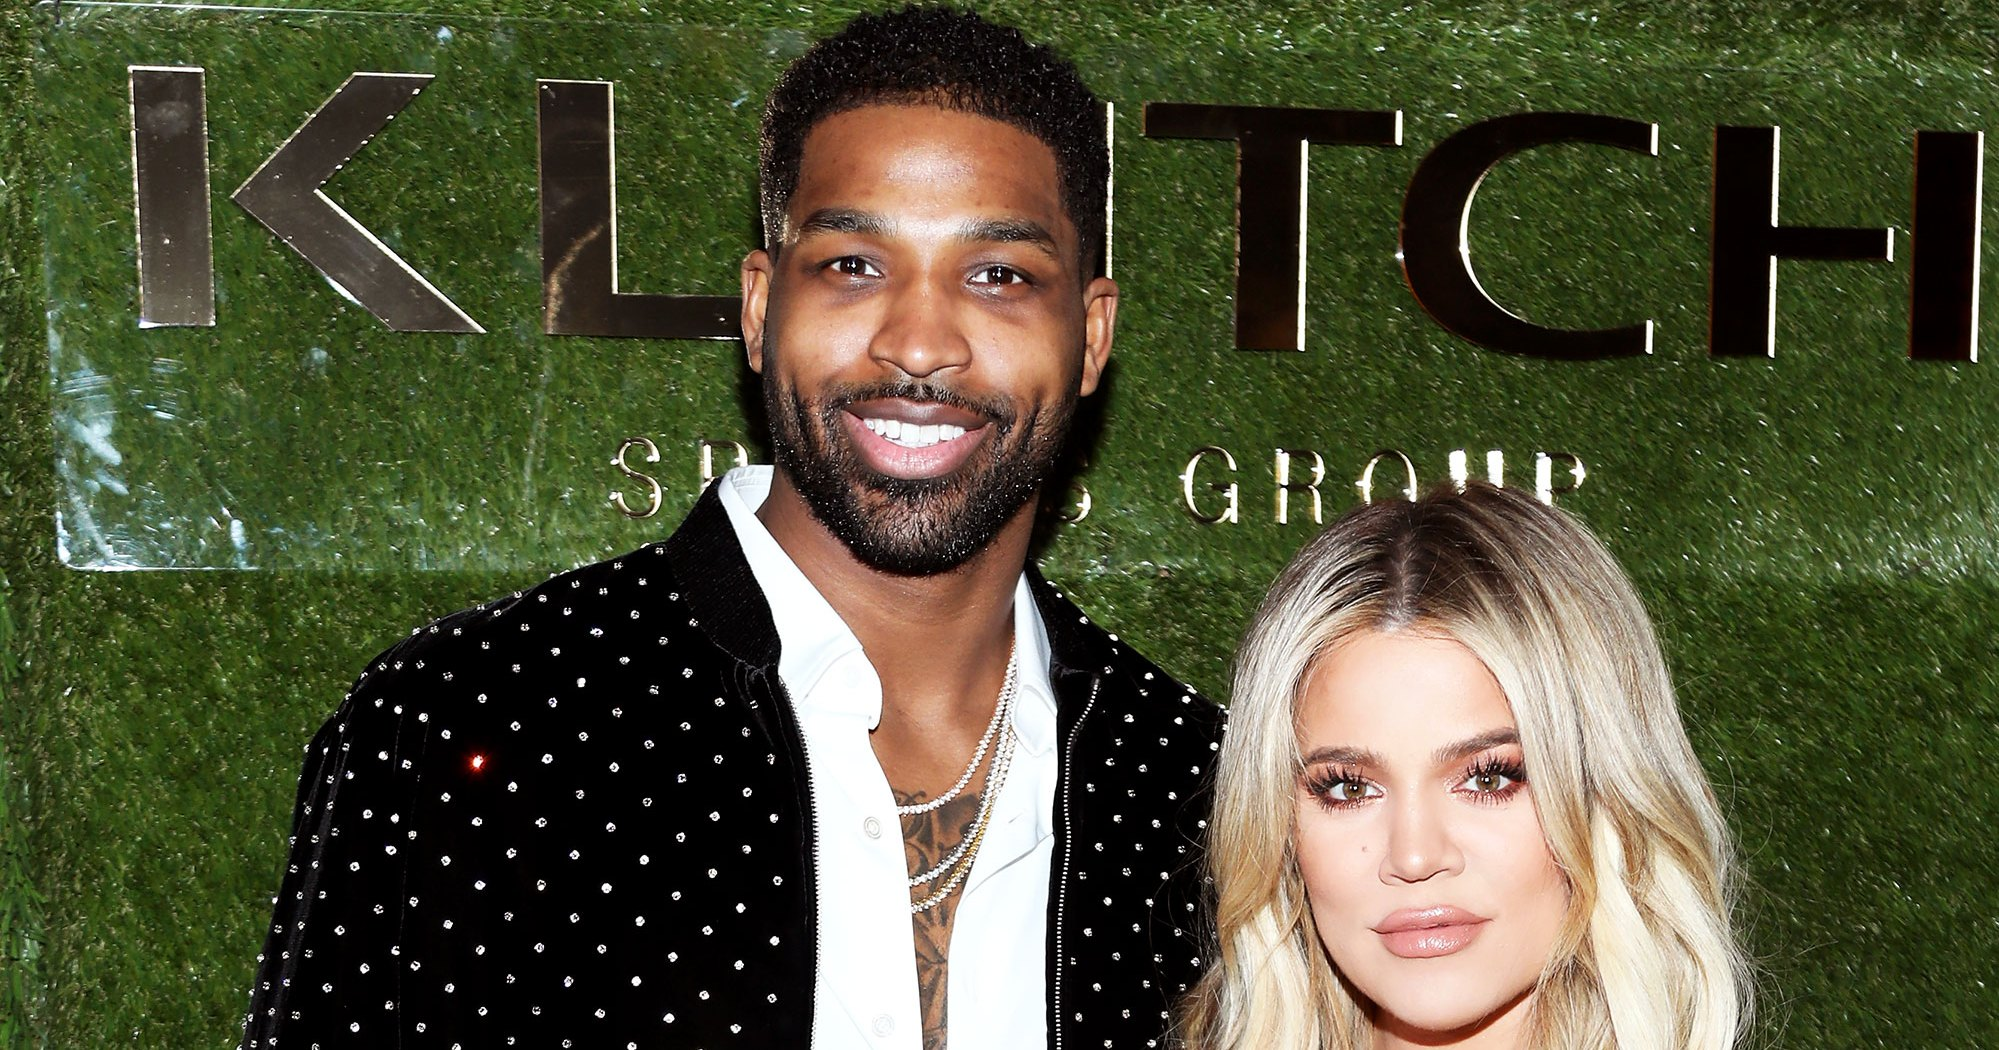 Khloe Kardashian and Tristan Thompson Are 'Actively Trying' for Baby No. 2!